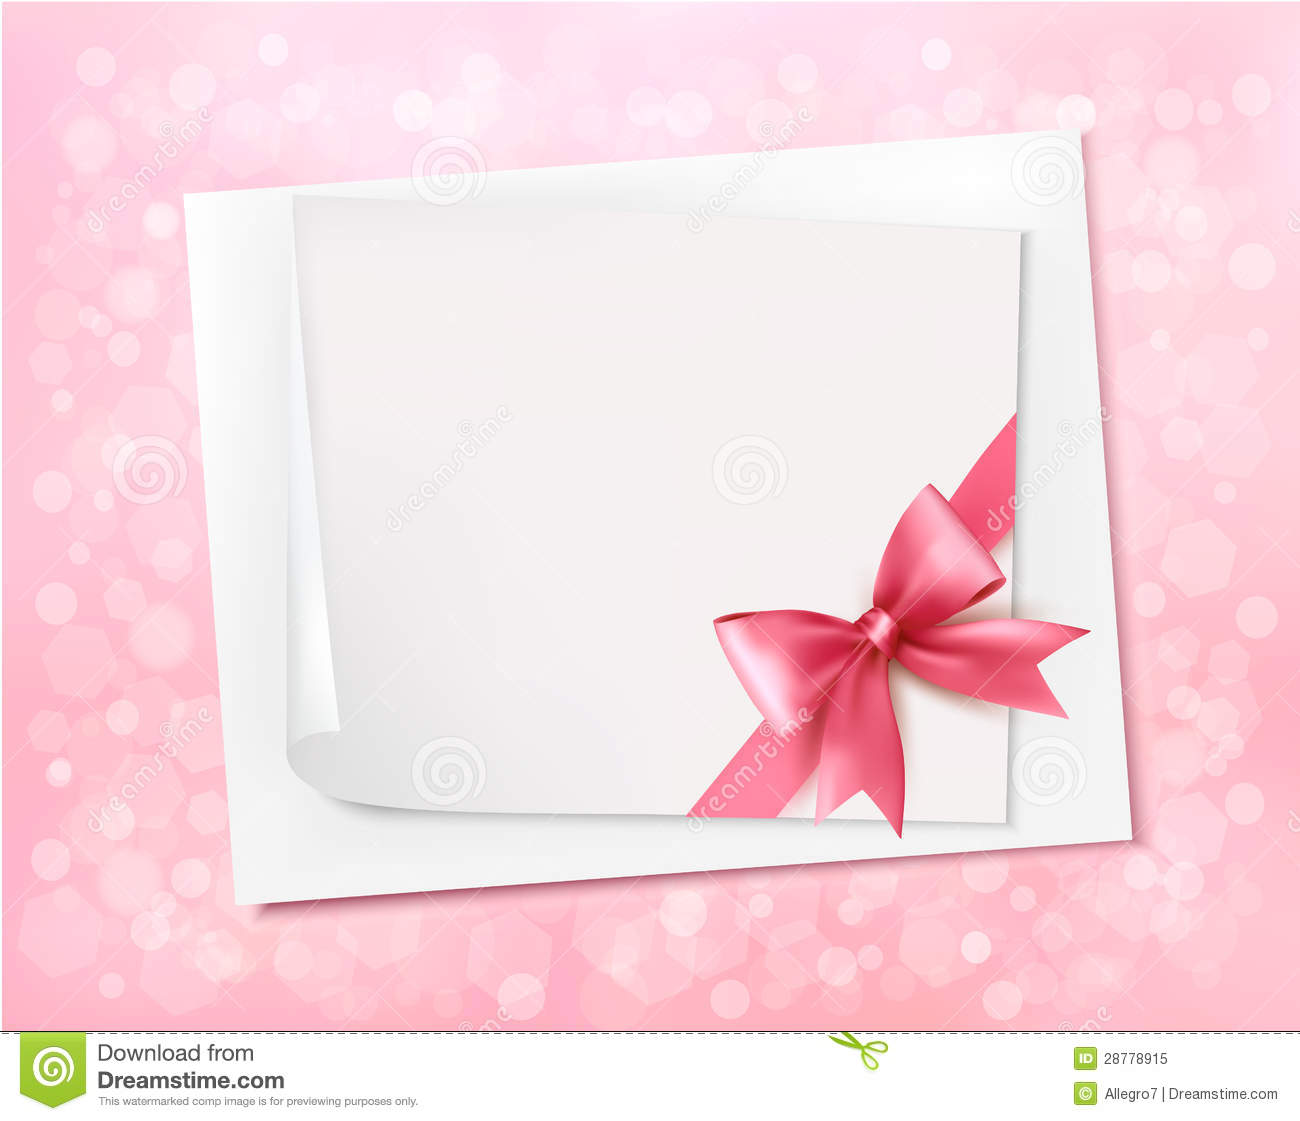 Holiday Background With Gift Pink Bow Royalty Free Stock